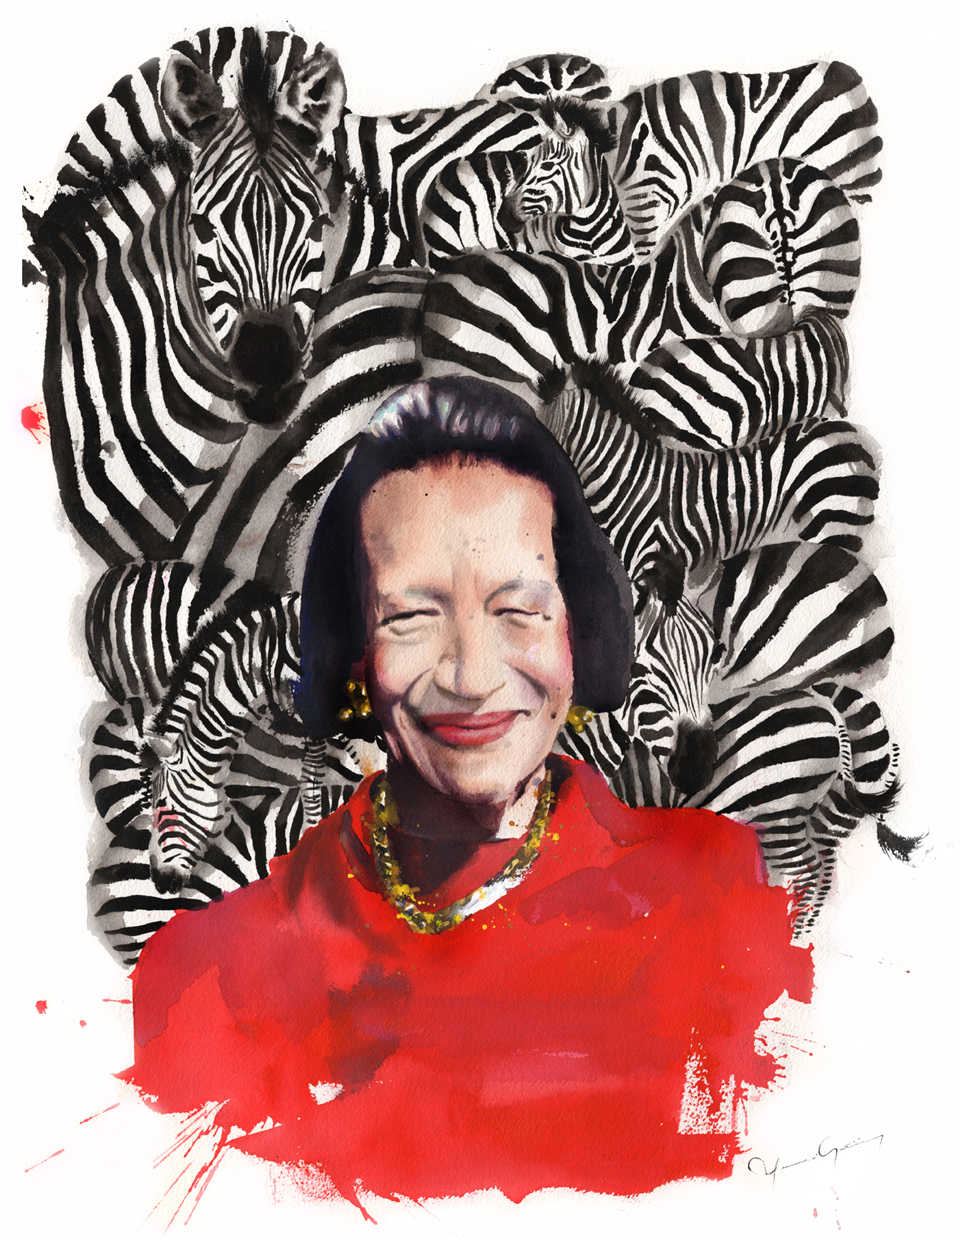 Marcela-Gutierrez-Diana-Vreeland-I'm-coming-for-the-Zebras